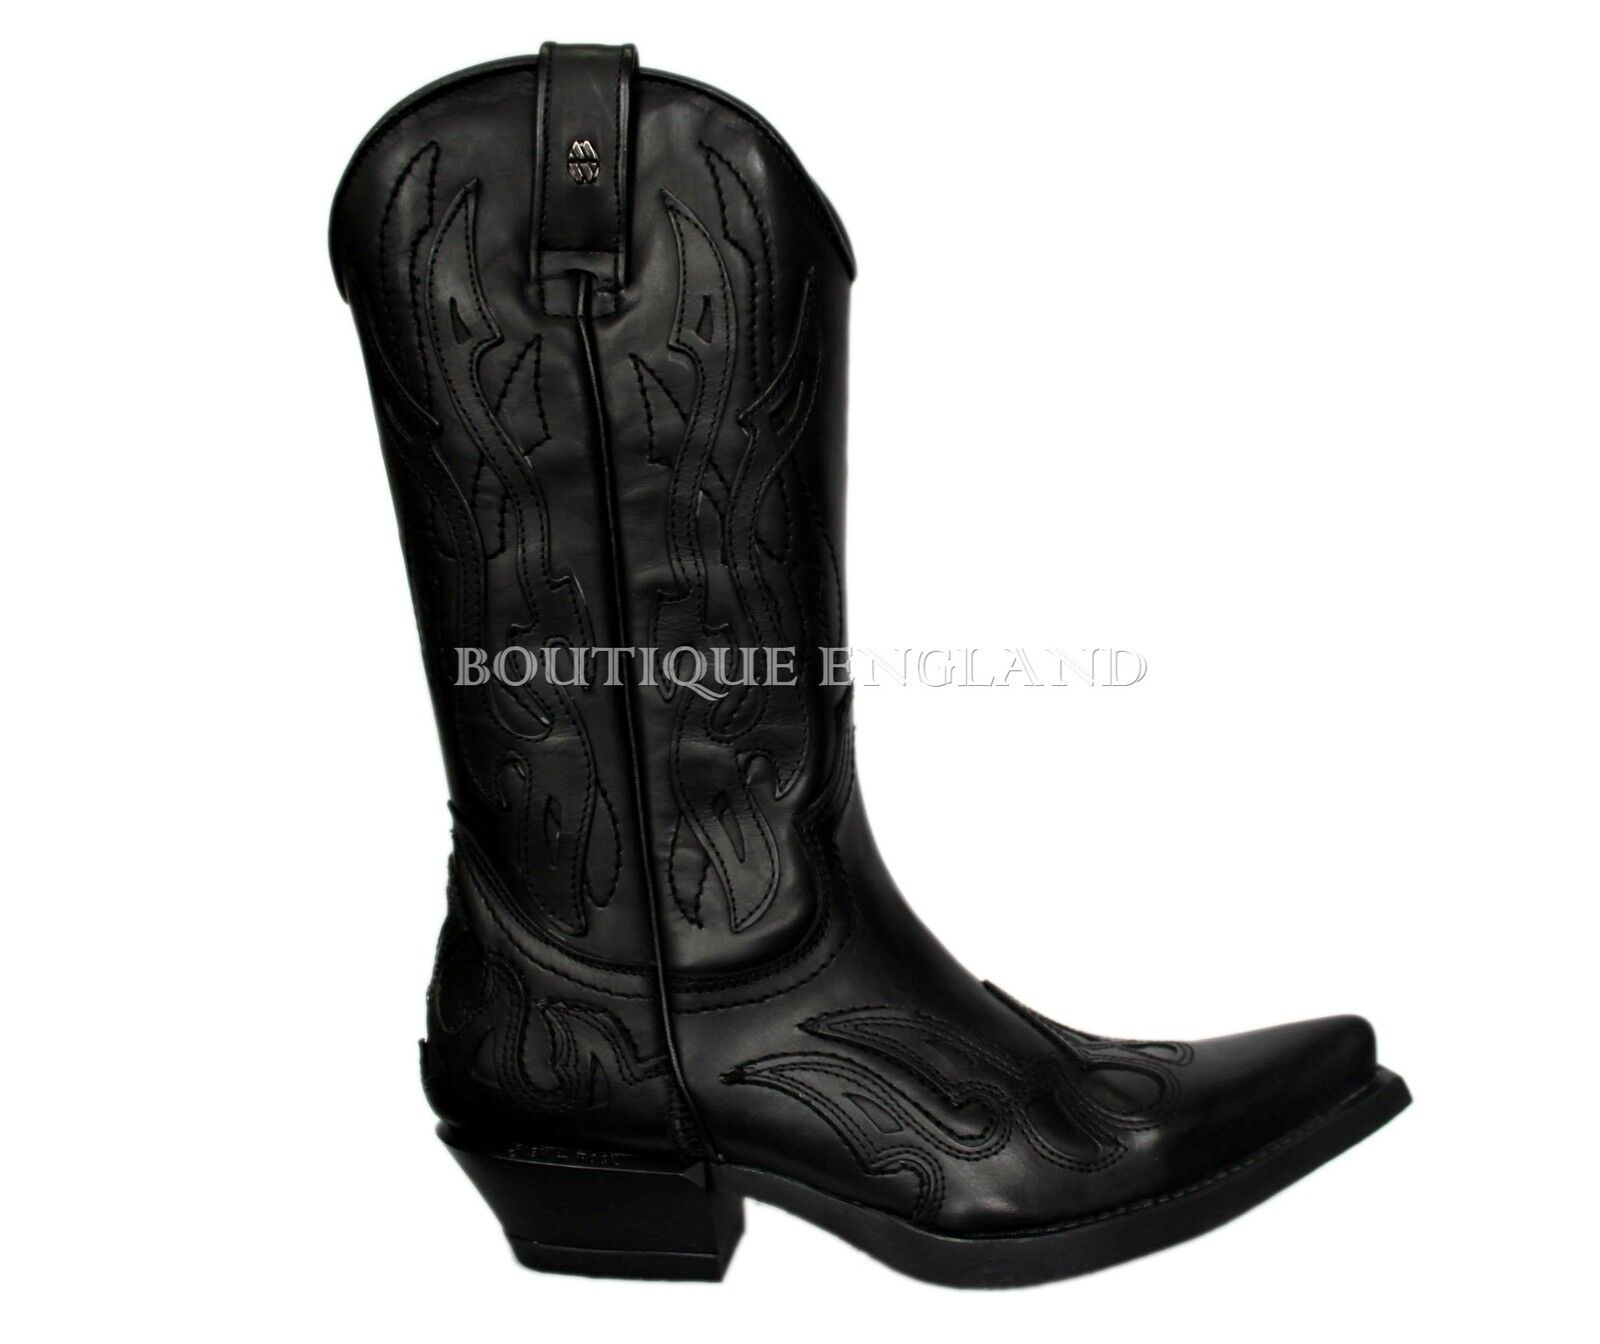 New Rock M.7921-B Black Plain Flame Devil Devil Devil Leather Boot Goth Biker Rock Boots 1515b7